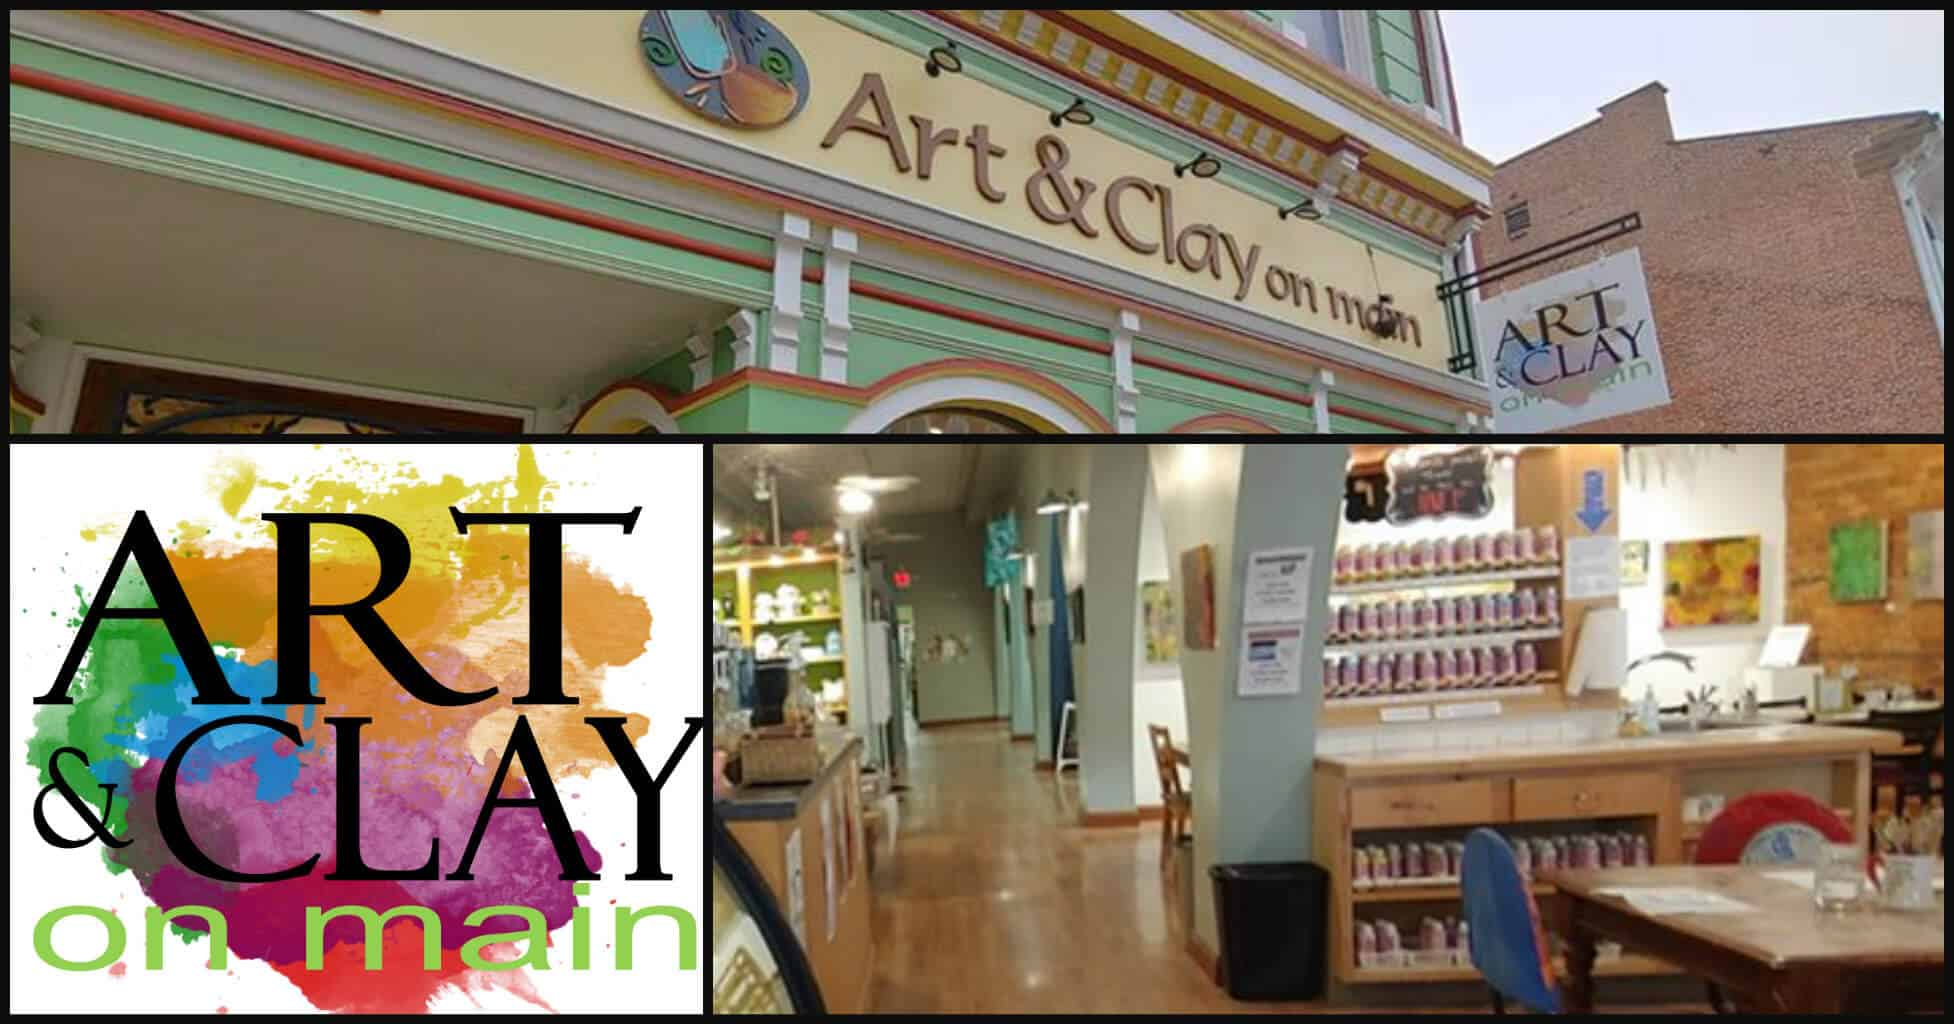 Art and Clay on Main in Lancaster, Ohio